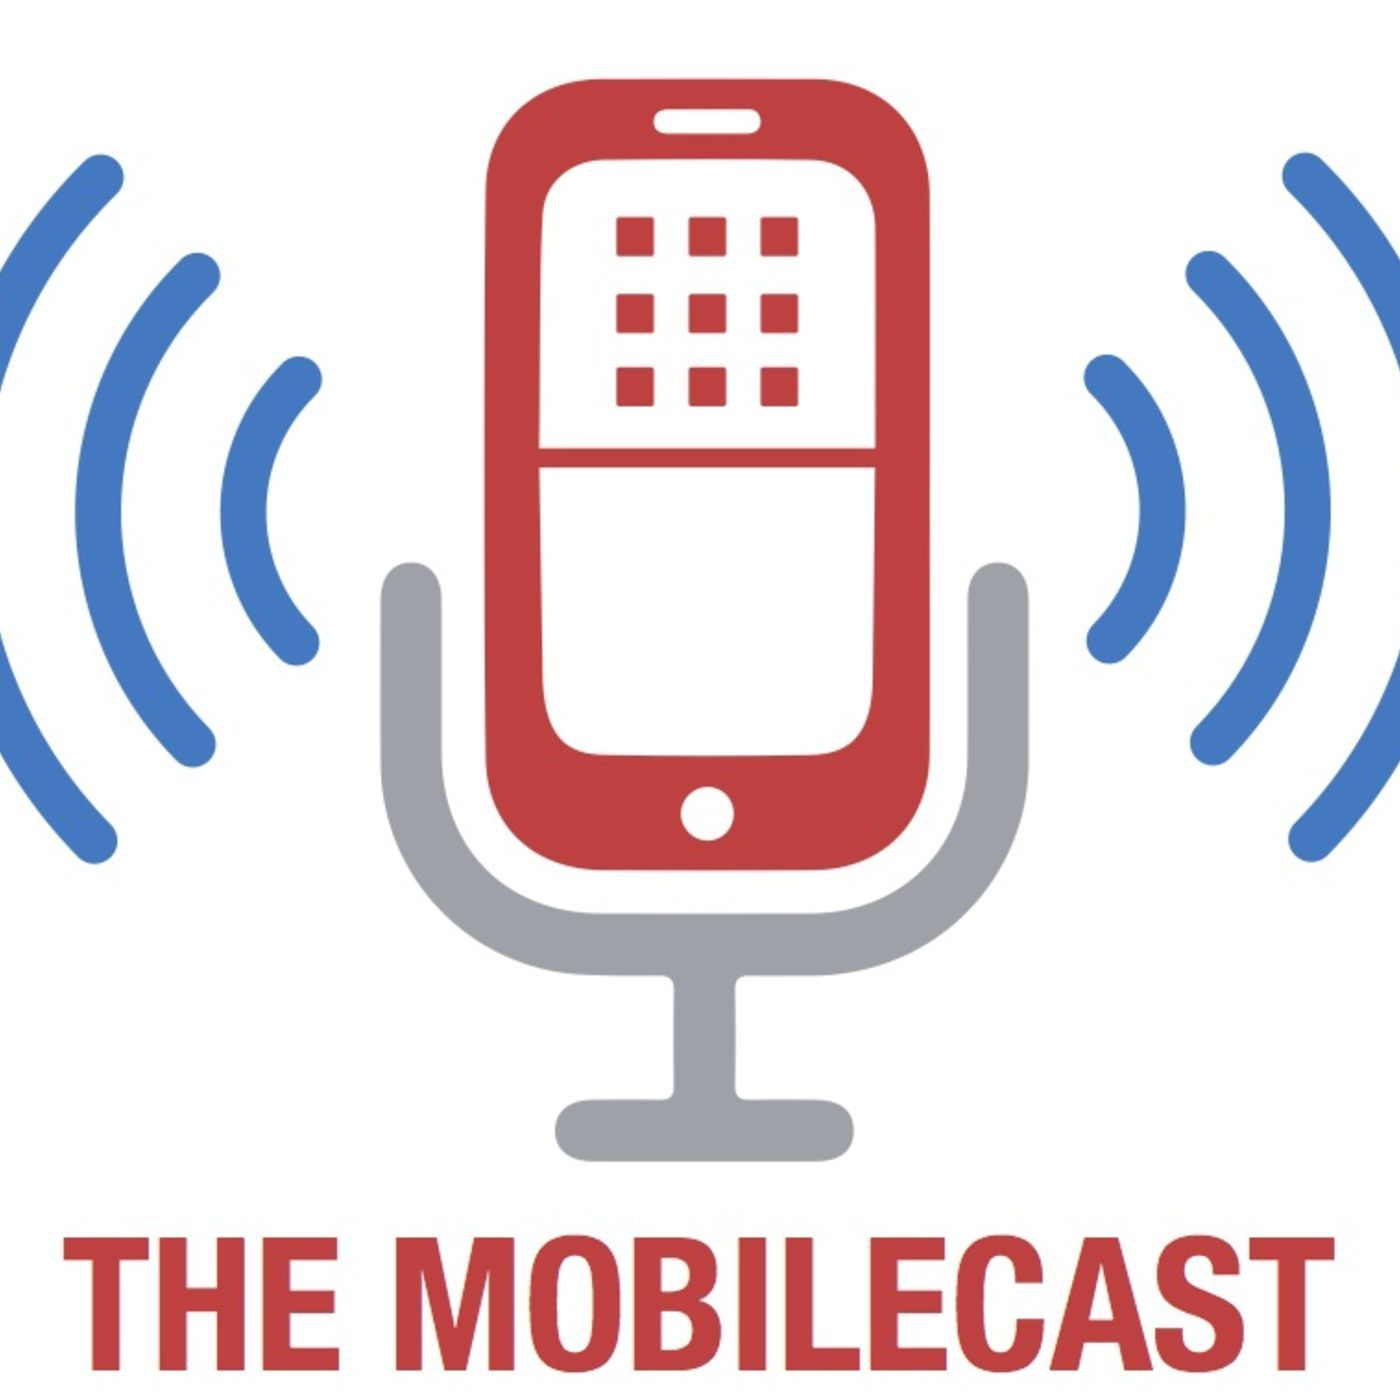 The Mobilecast #302 - S3 Ep2 - MWC 2016 Day 0 with Carolina Milanesi